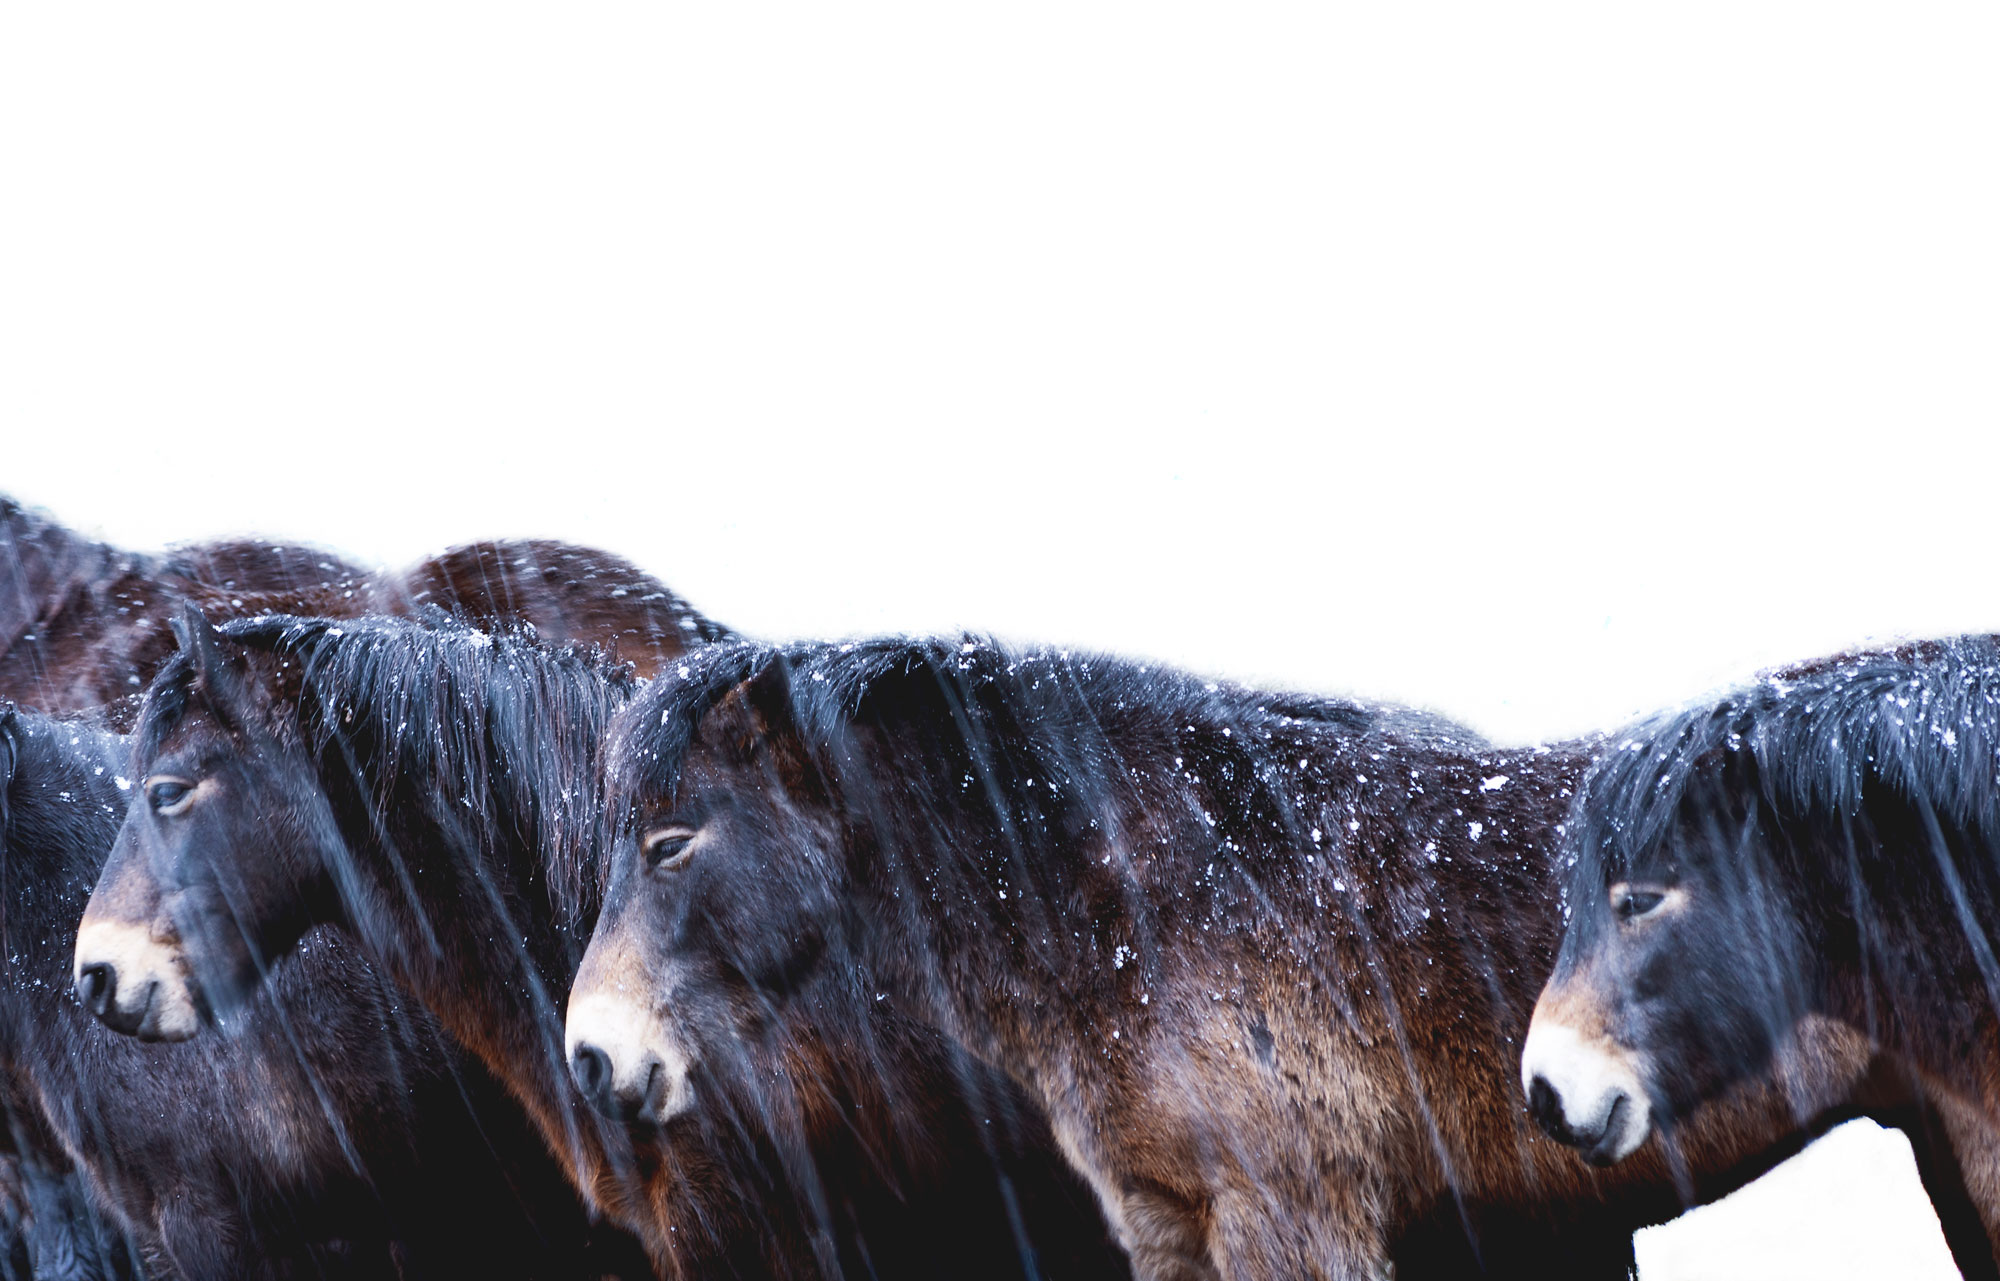 Exmoor Ponies January 2018 (click to enlarge)